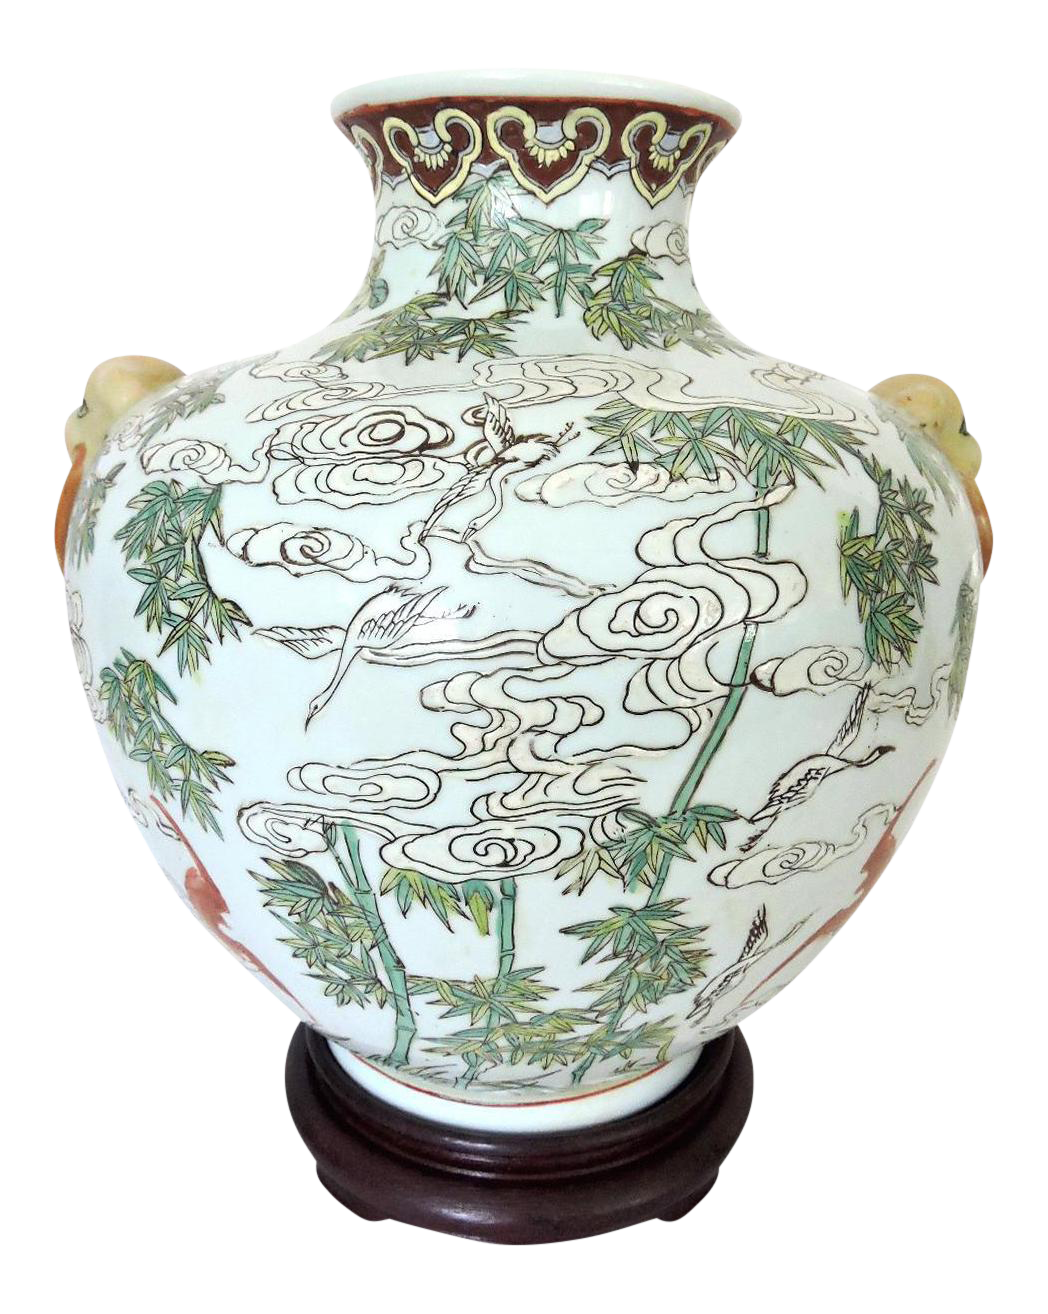 Chinese 39 white clouds 39 vase stand on price - Decoration de grand vase transparent ...